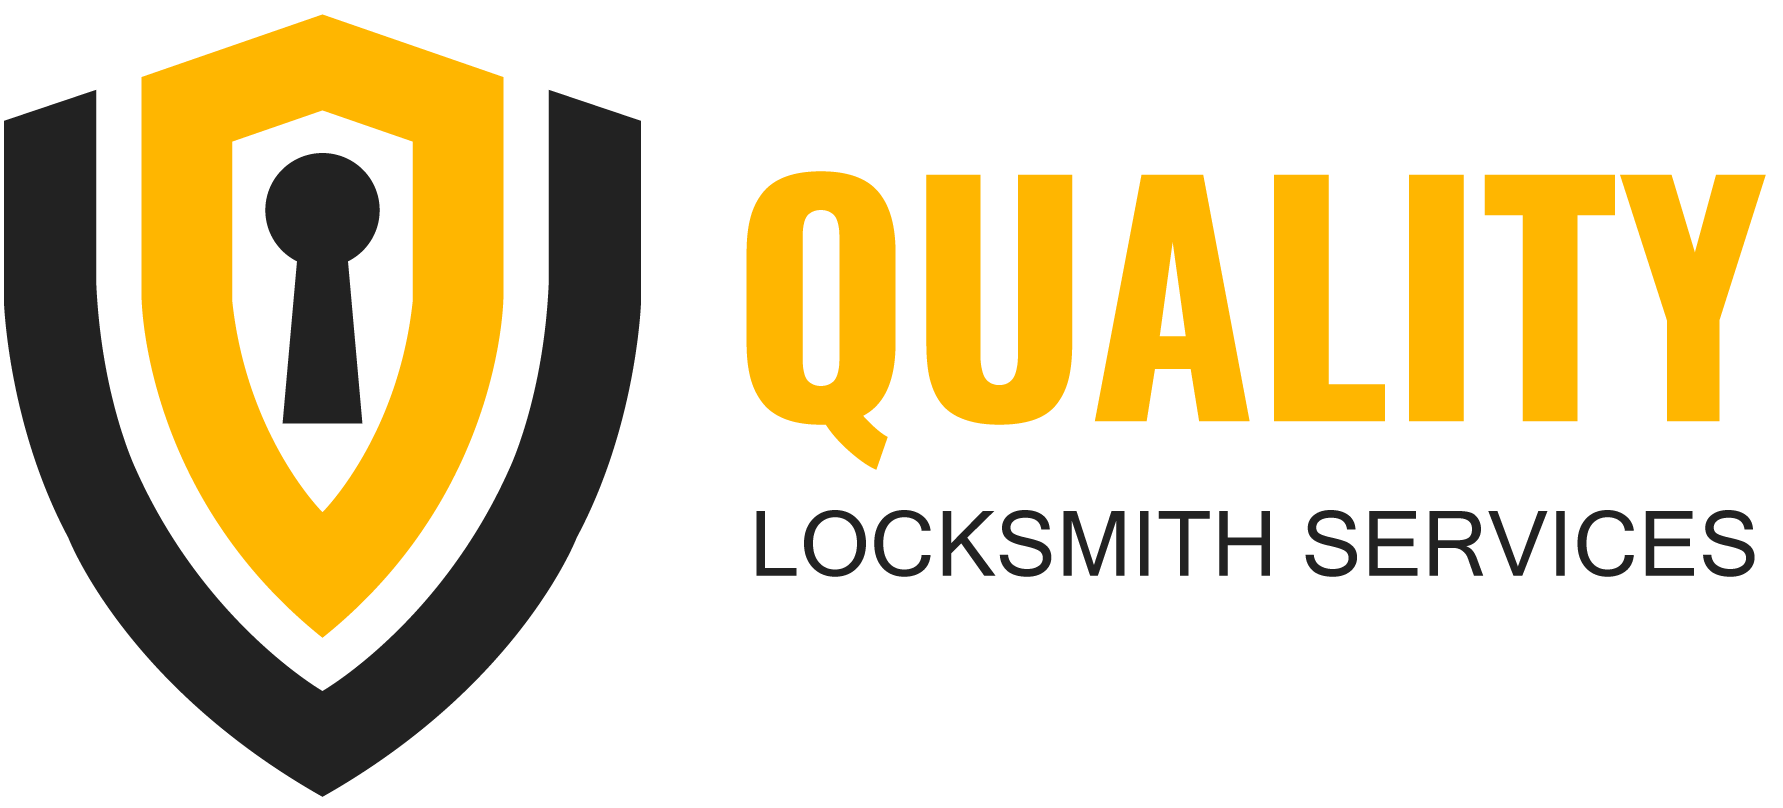 Quality Locksmith Services - (714)930-1105